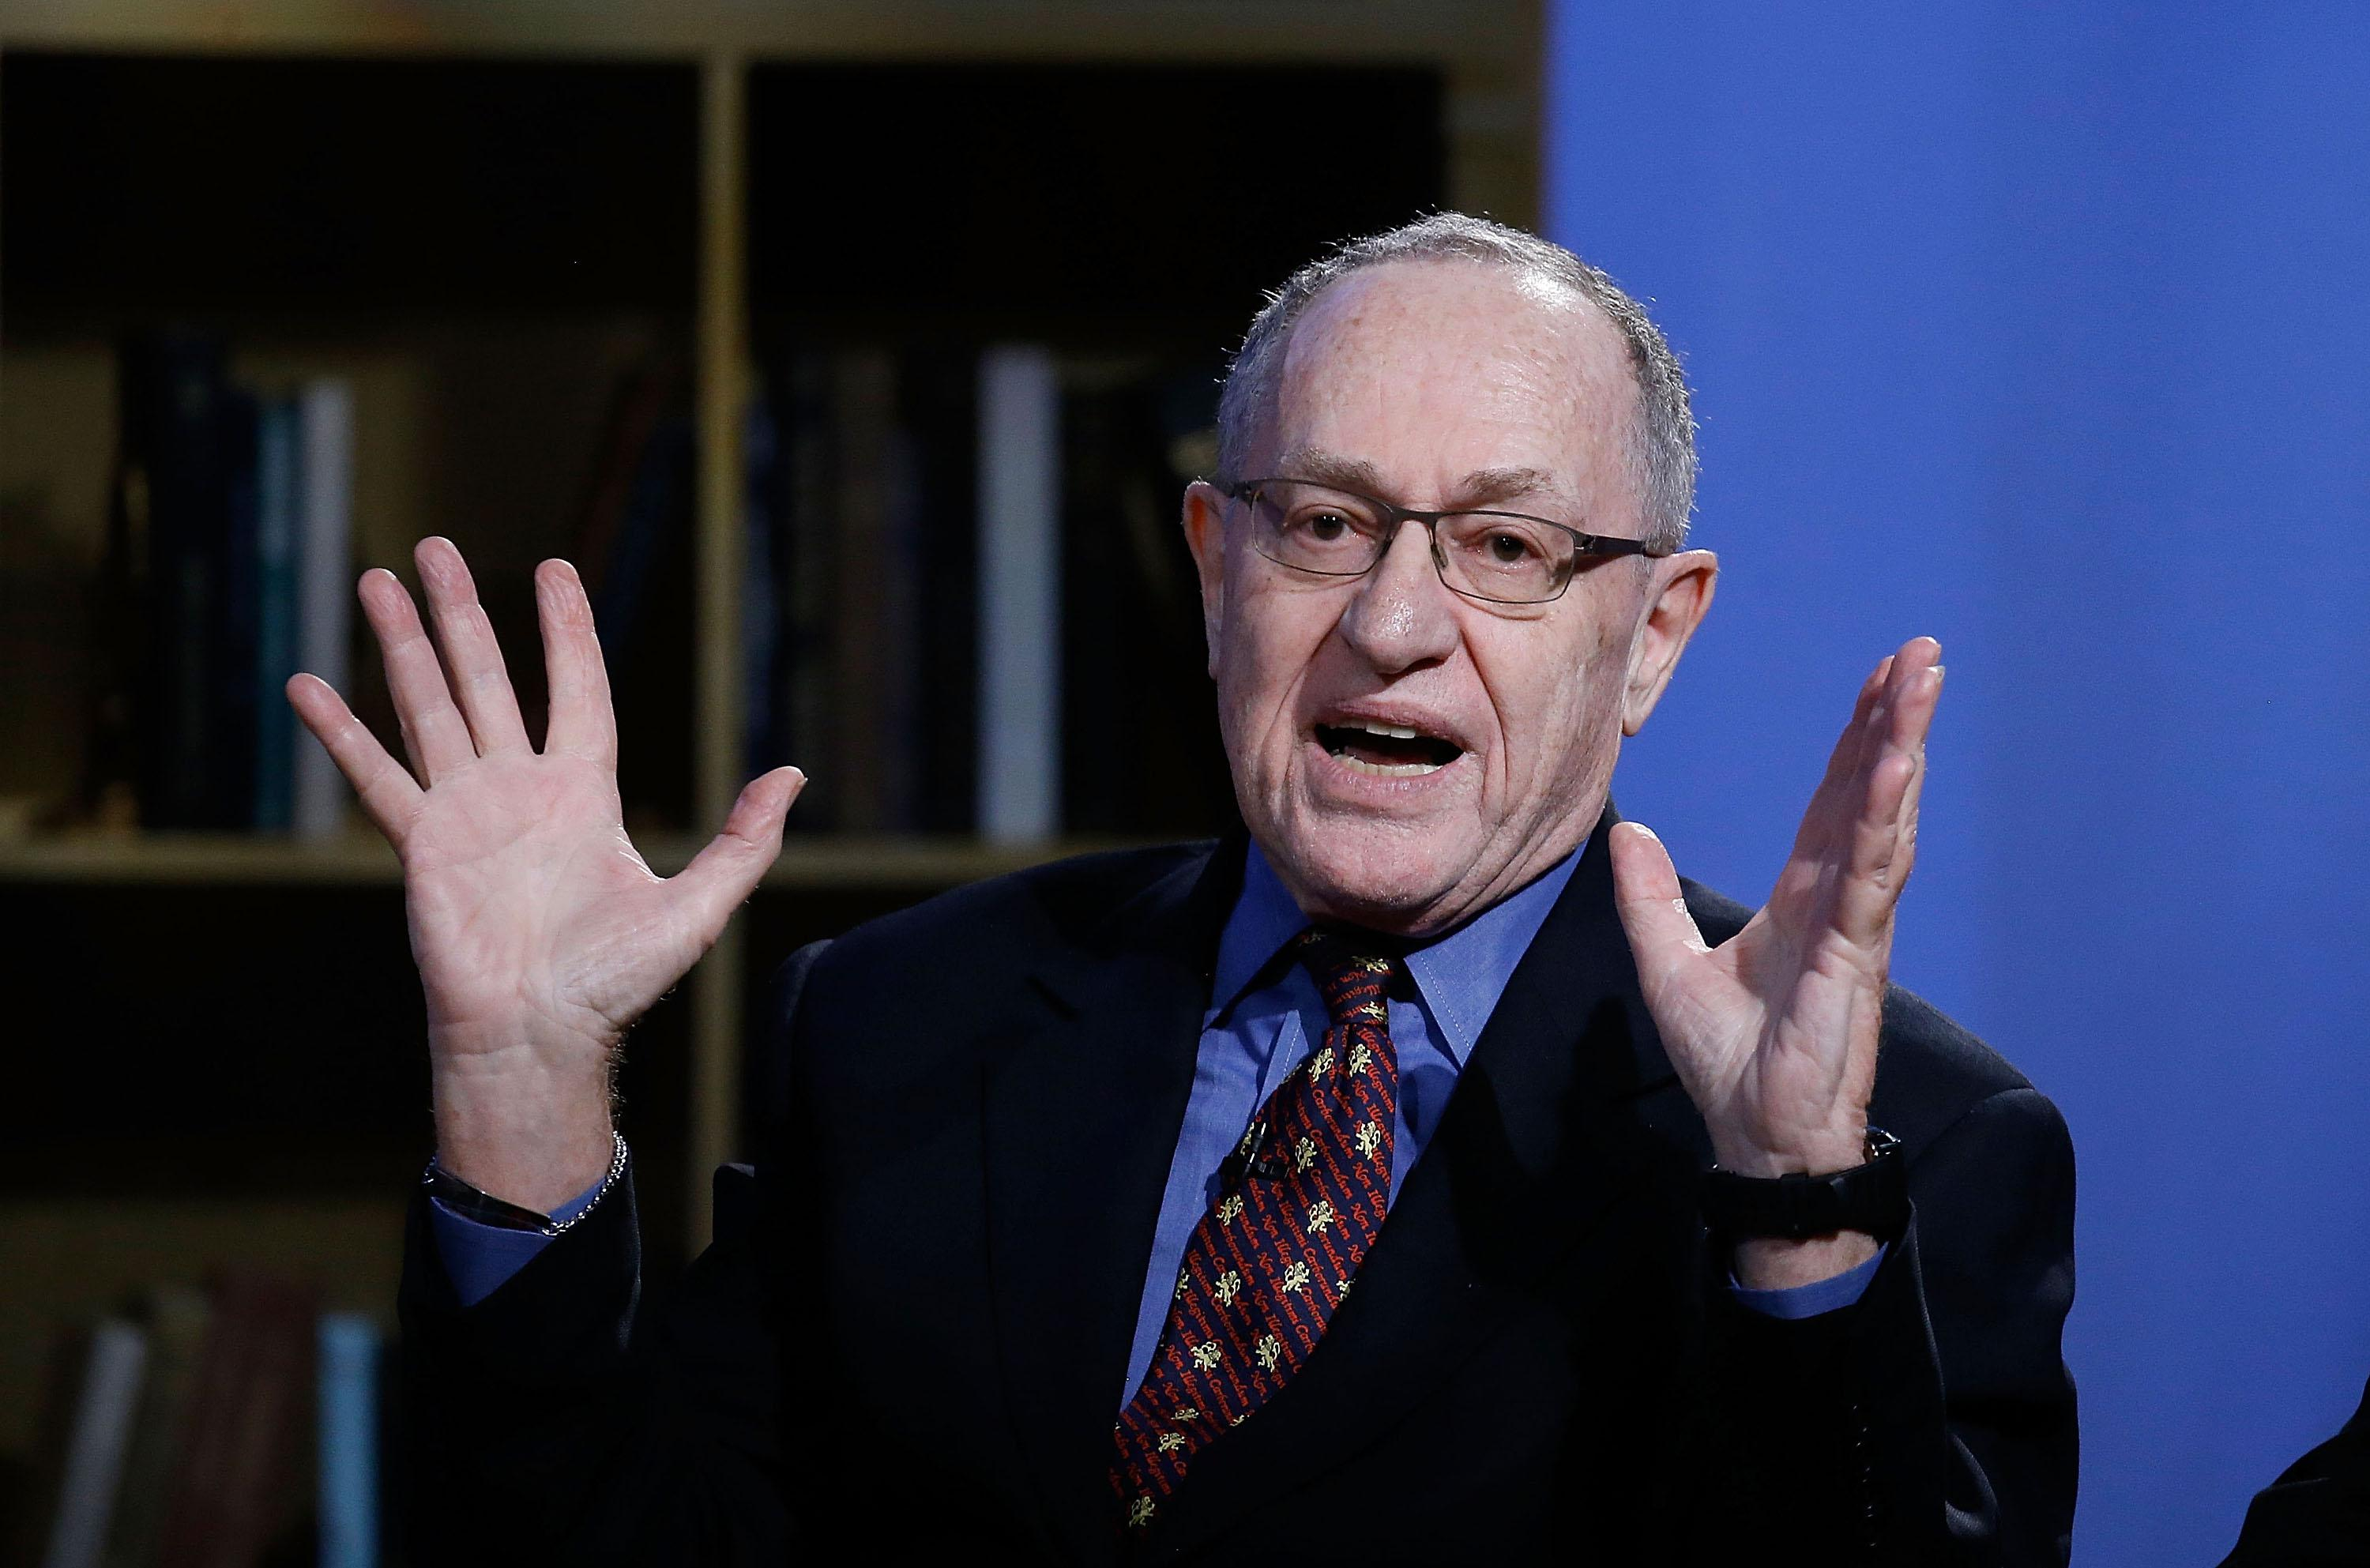 NEW YORK, NY - FEBRUARY 03:  Alan Dershowitz attends Hulu Presents 'Triumph's Election Special' produced by Funny Or Die at NEP Studios on February 3, 2016 in New York City.  (Photo by John Lamparski/Getty Images for Hulu)